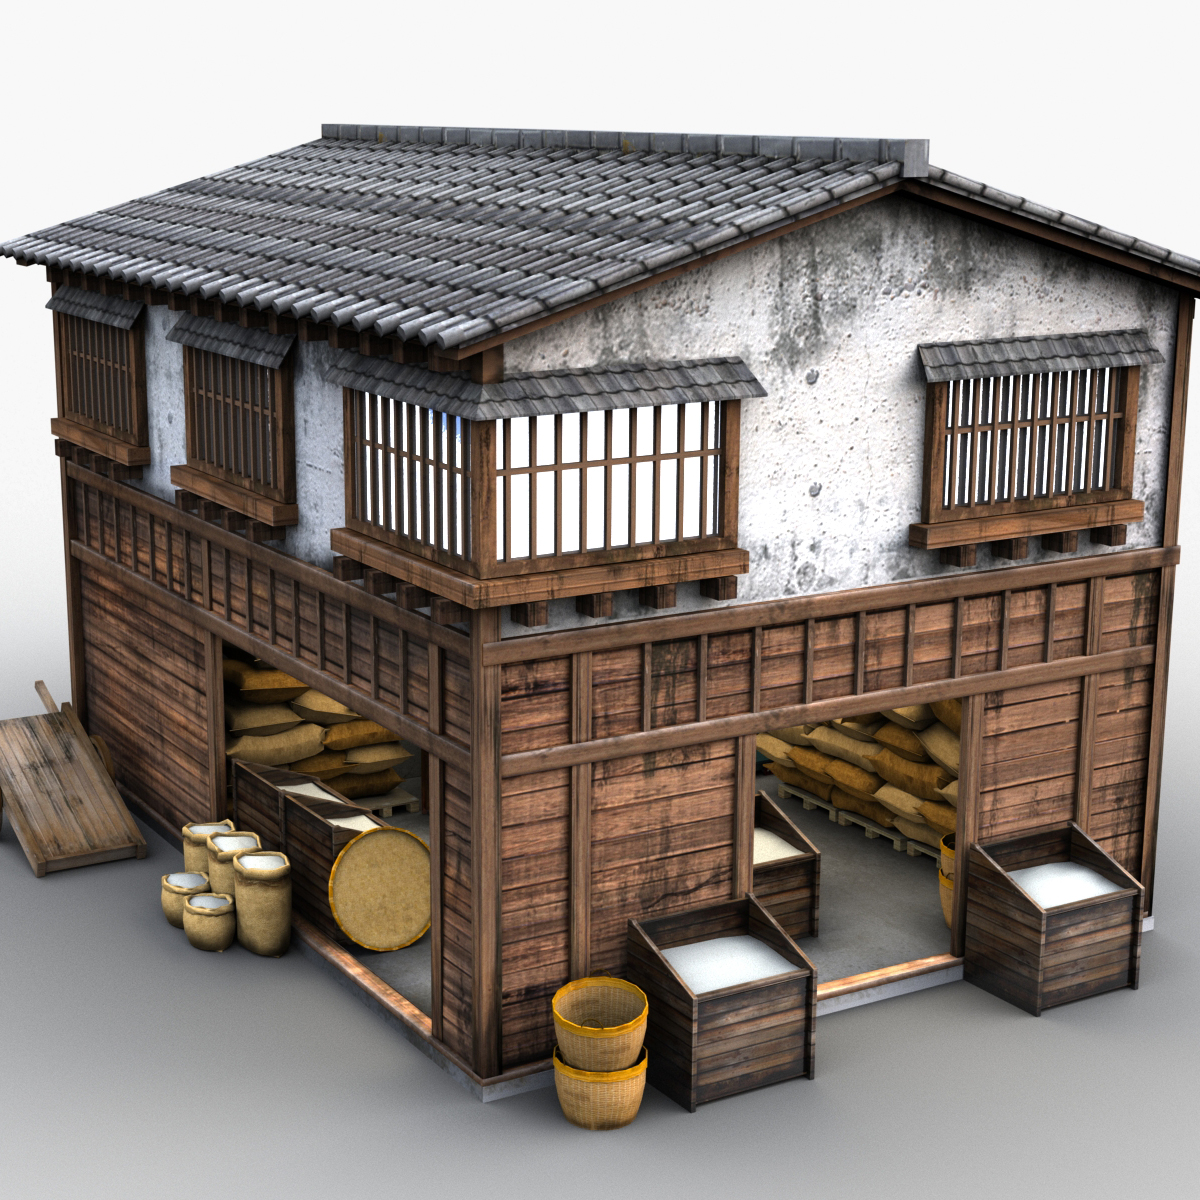 Japanese Style House 00253d Model By Tomoplace On Deviantart